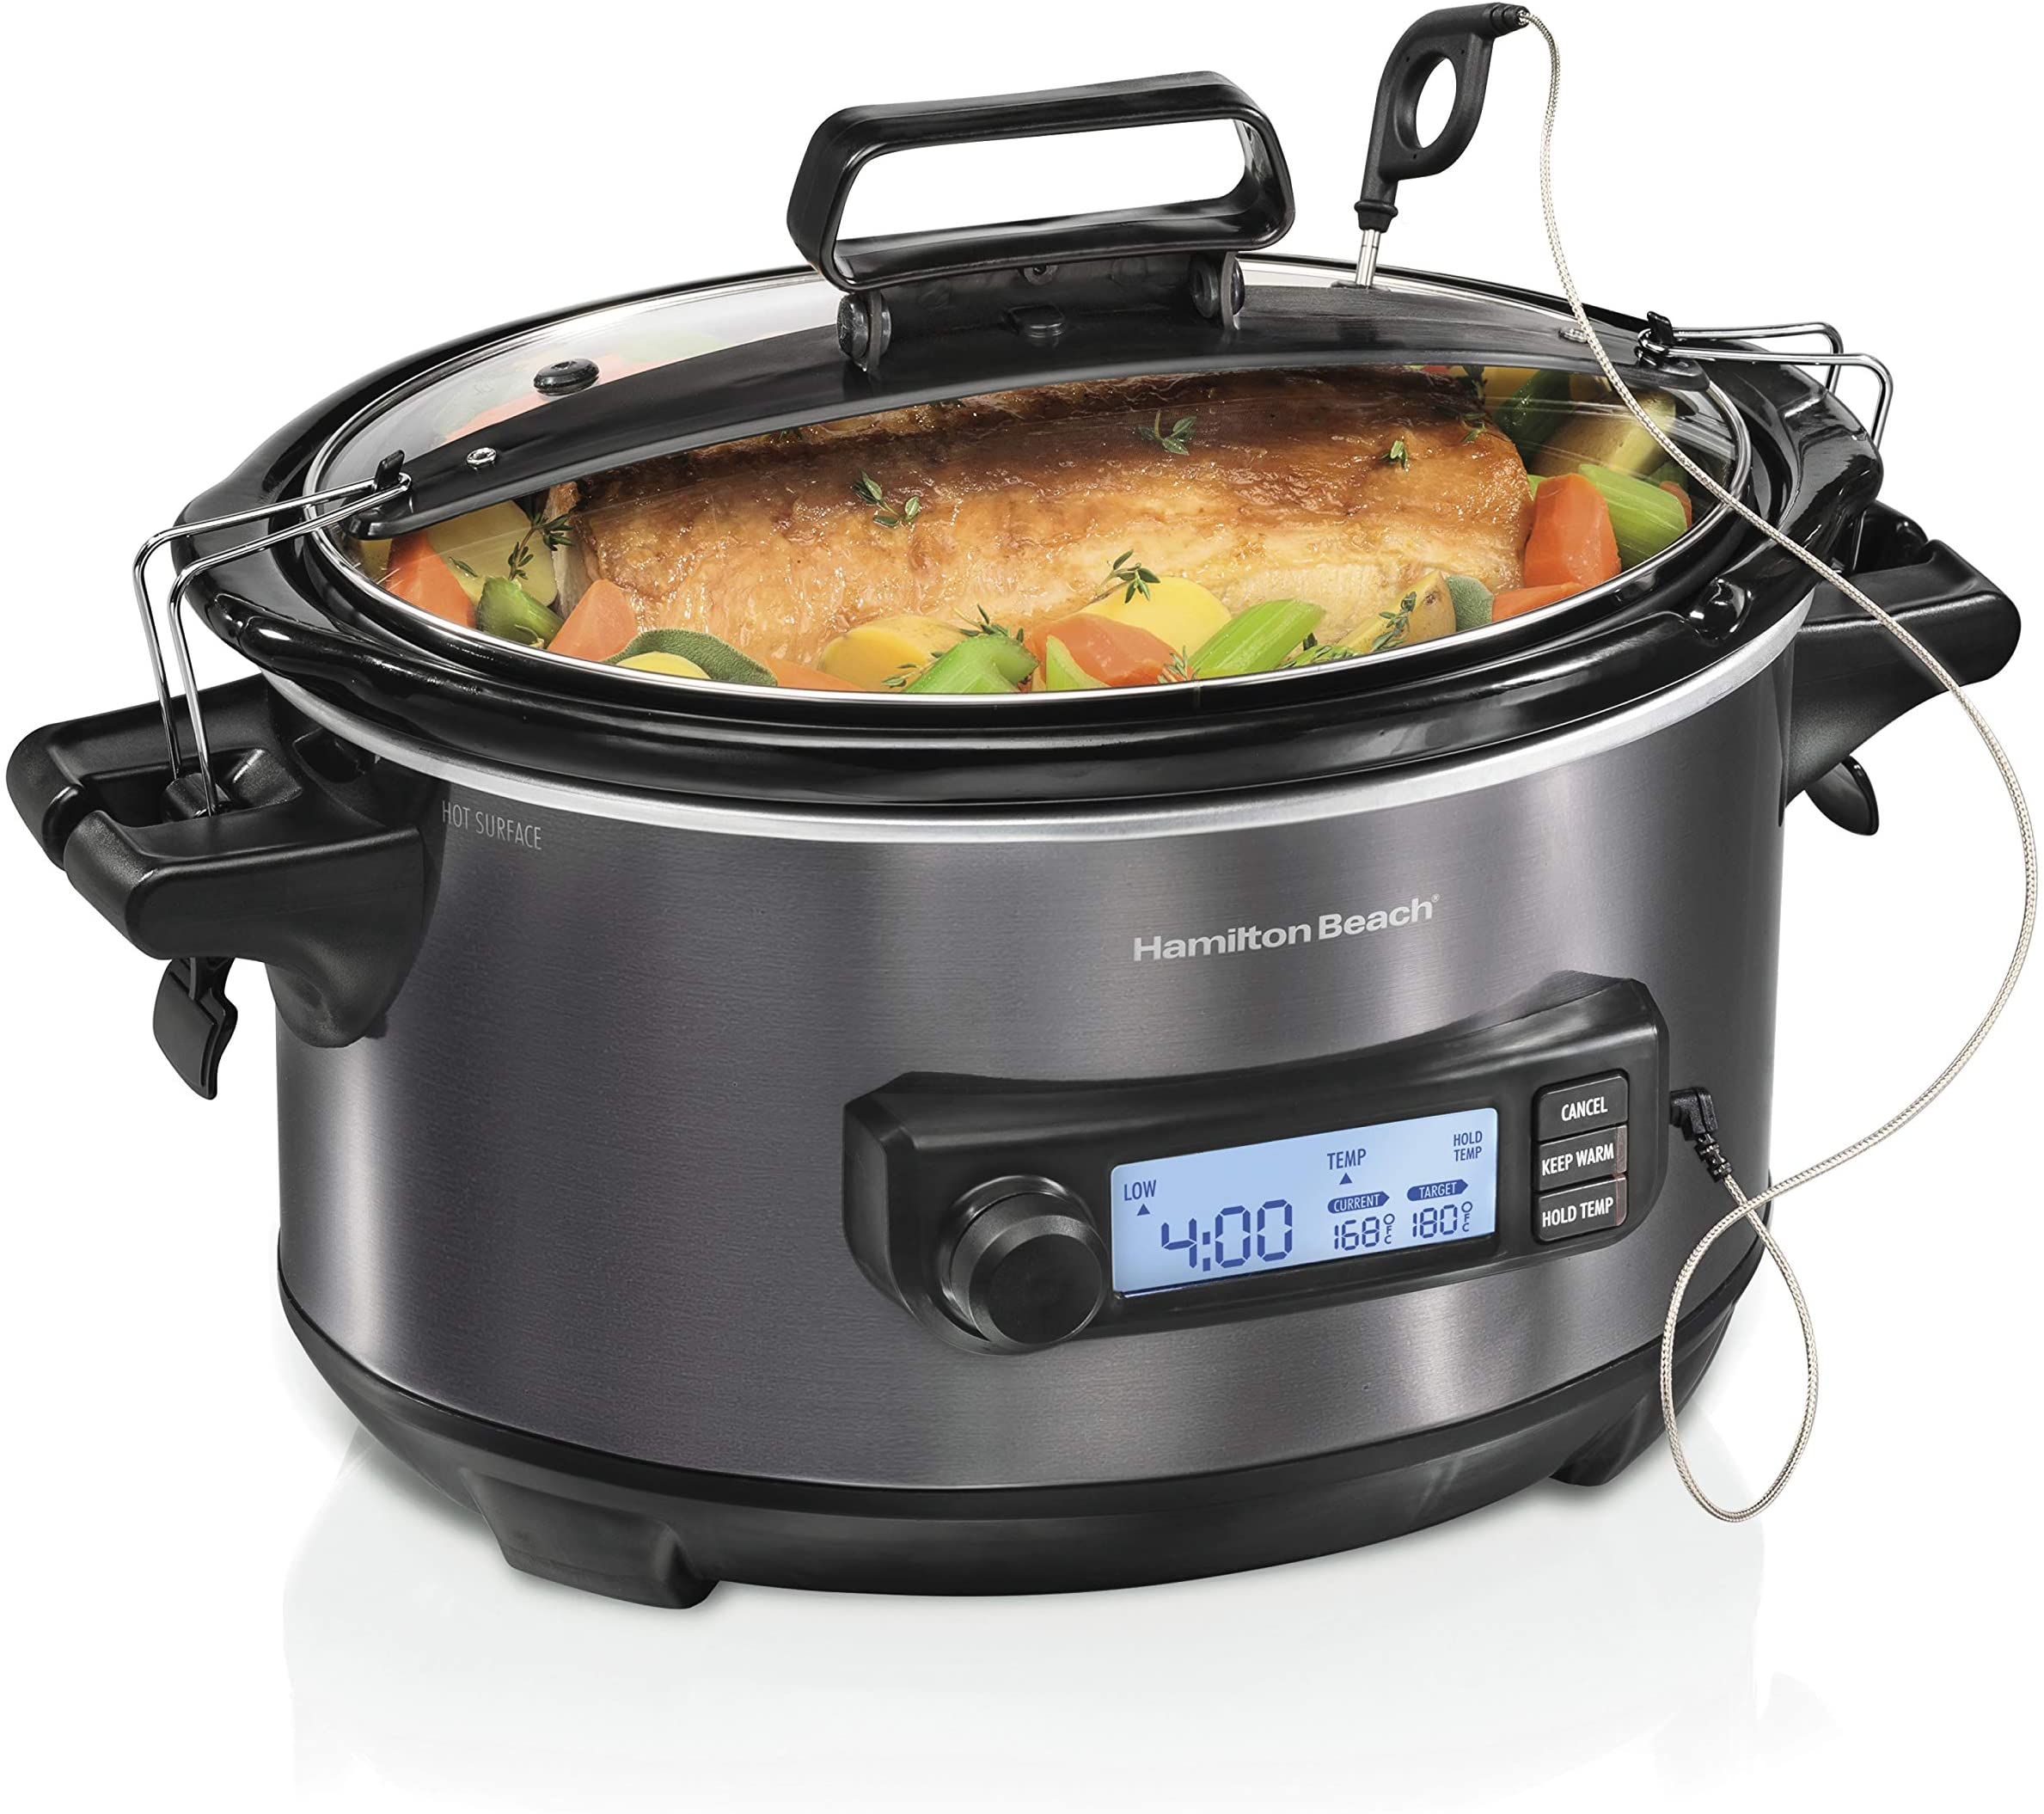 Hamilton Beach Portable 6-Quart Digital Programmable Slow Cooker With Temp Tracking Temperature Probe to Braise, Sous Vide, Make Fondue & Yogurt, Lid Lock, Black Stainless (33866)